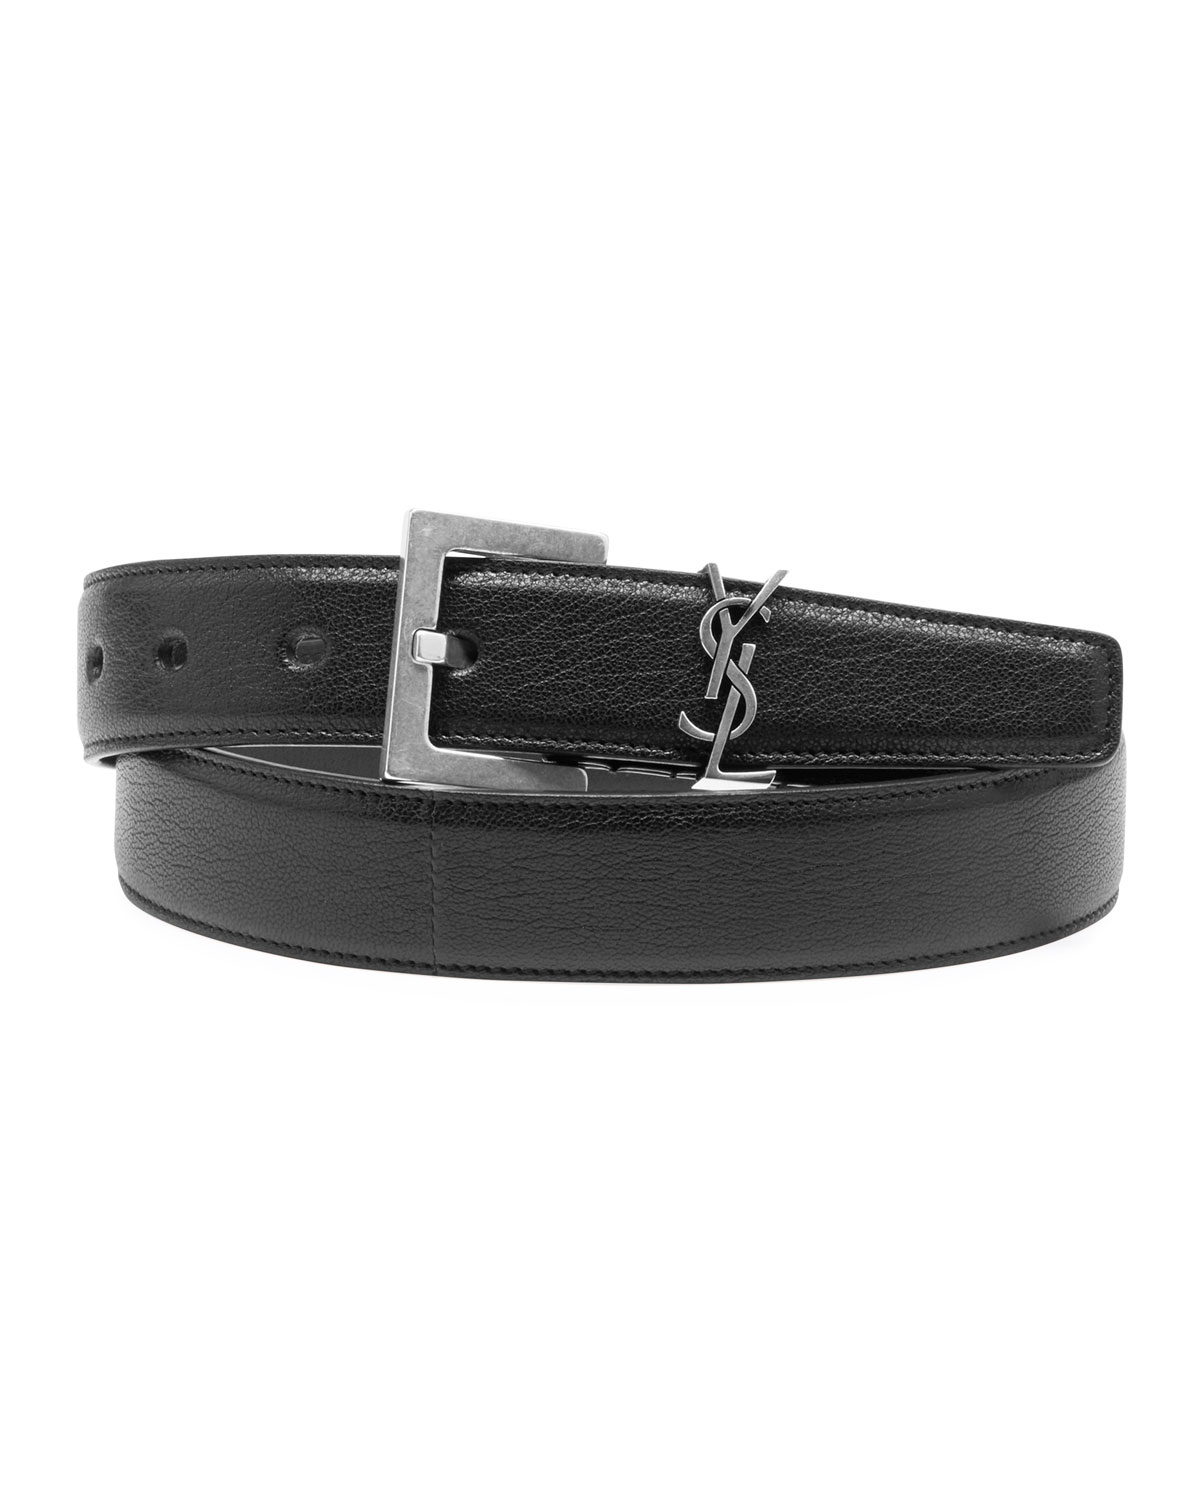 d06fe3d3103 Saint Laurent Men's YSL Lamb Leather Belt | Neiman Marcus